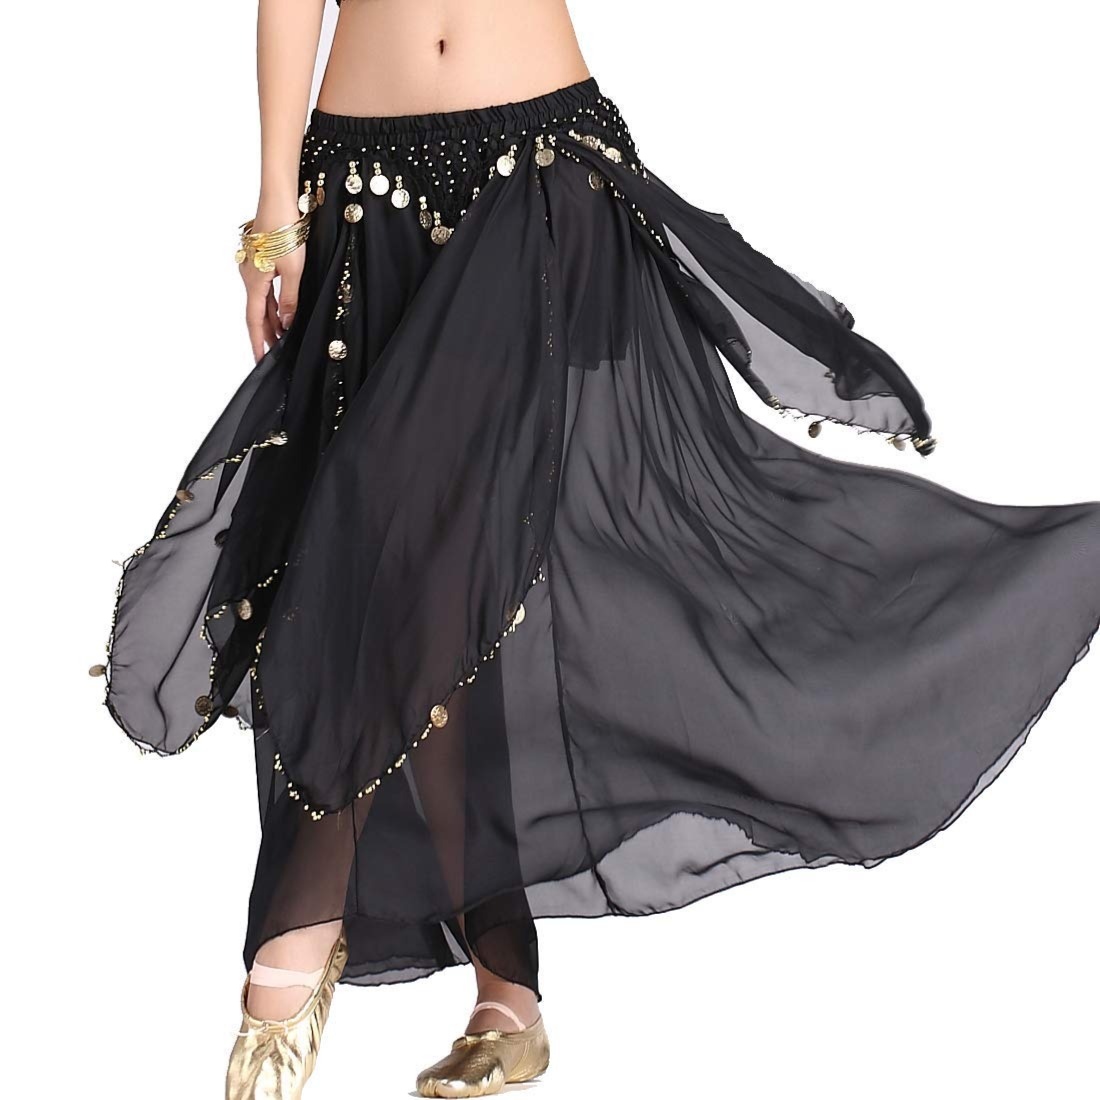 The Dance Bible Belly Dance Coin Chiffon Skirt for Girls and Women (Black) : Amazon.in: Clothing & Accessories